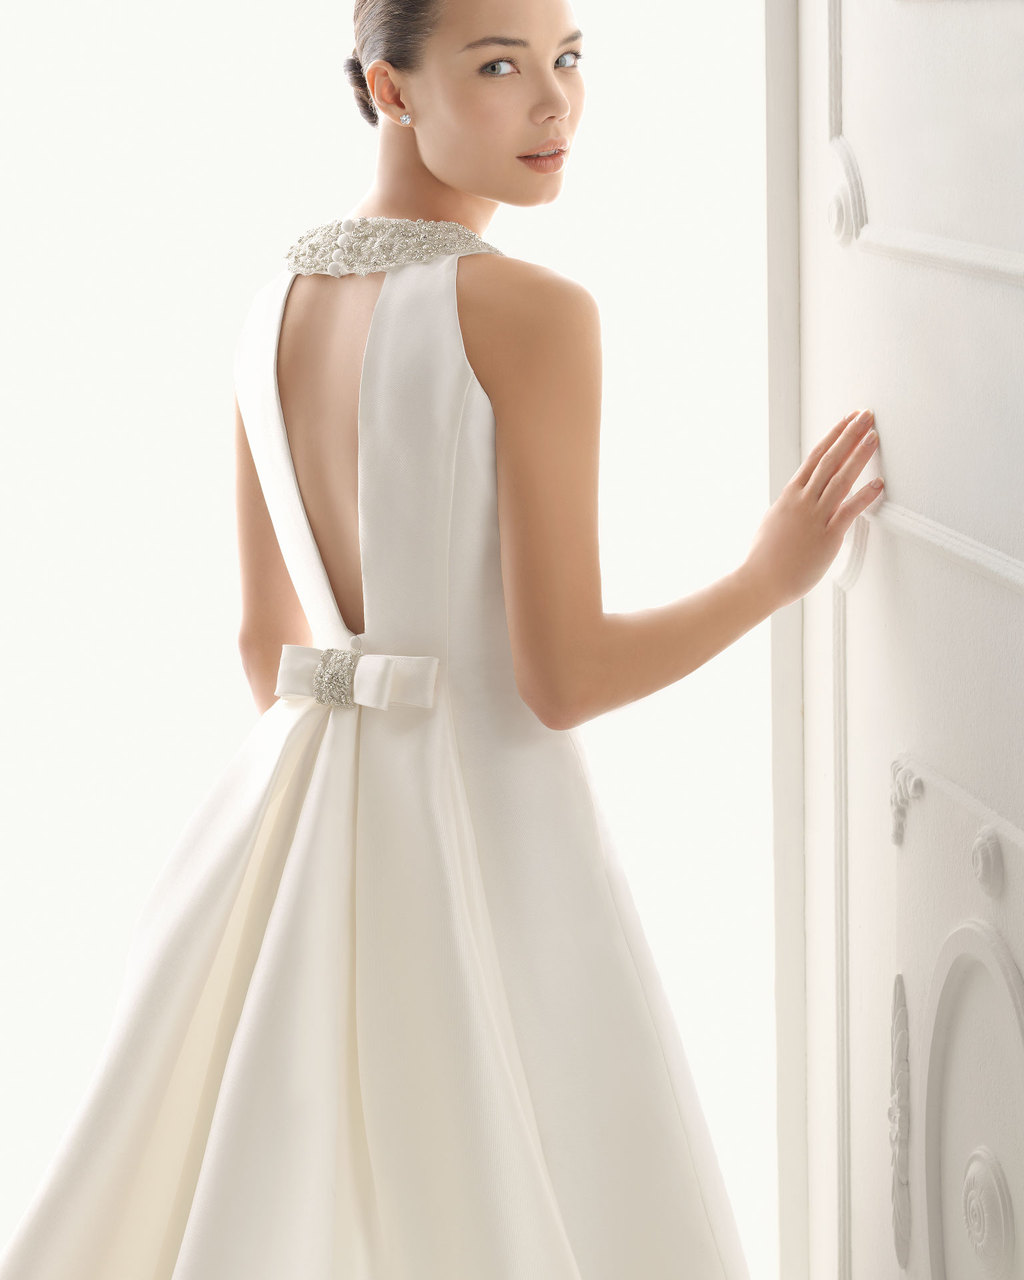 Aire-barcelona-wedding-dress-2014-bridal-ornela.full